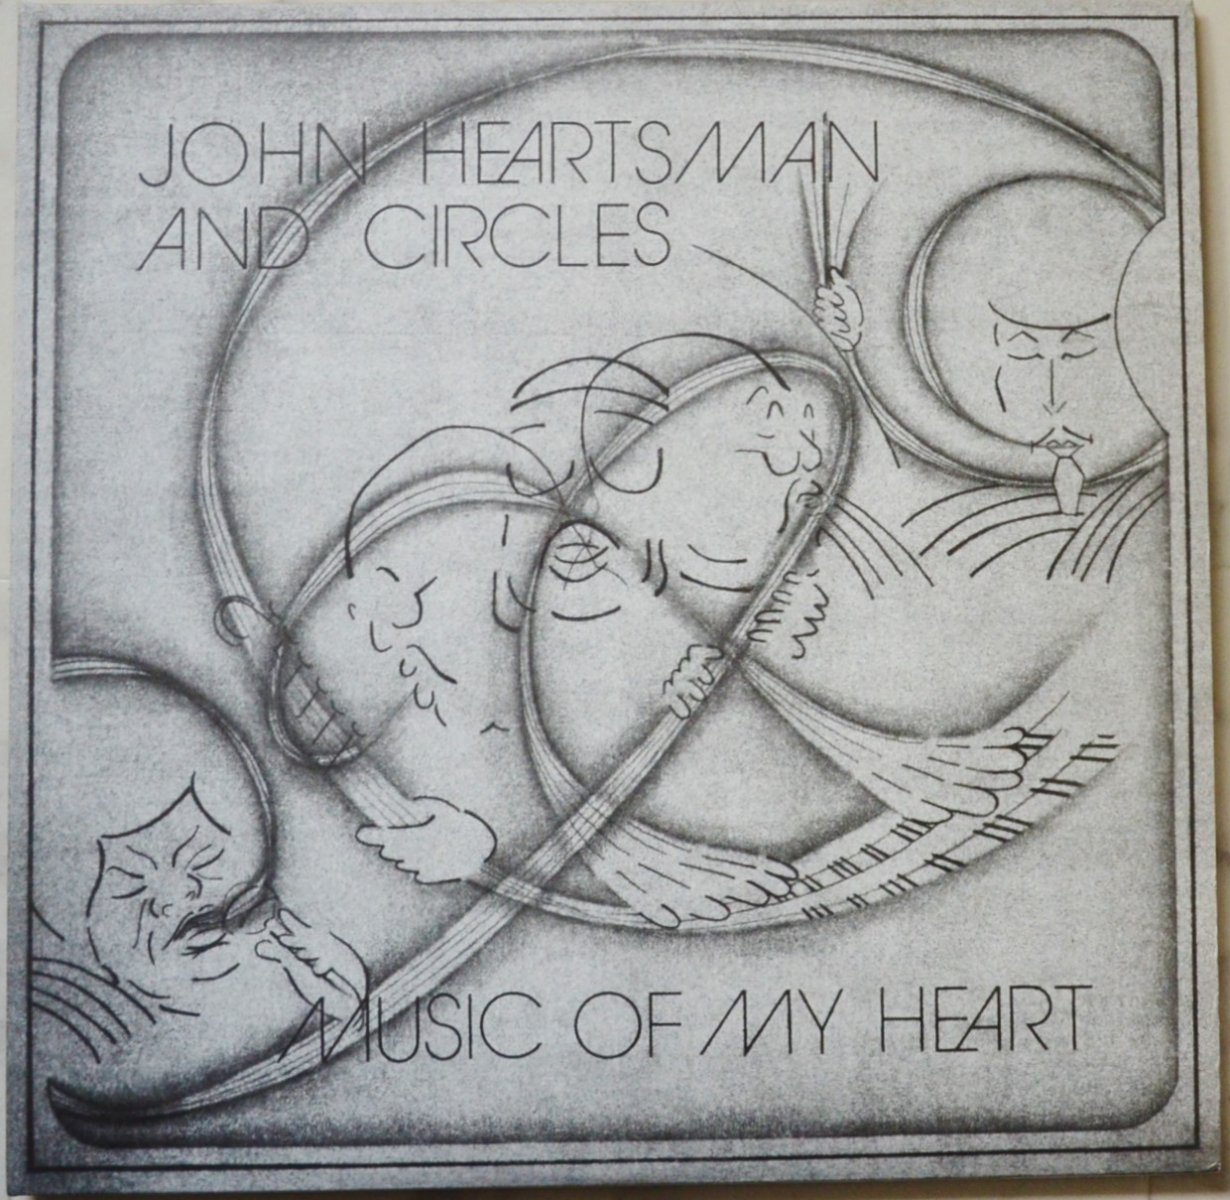 JOHN HEARTSMAN AND CIRCLES / MUSIC OF MY HEART (2LP)